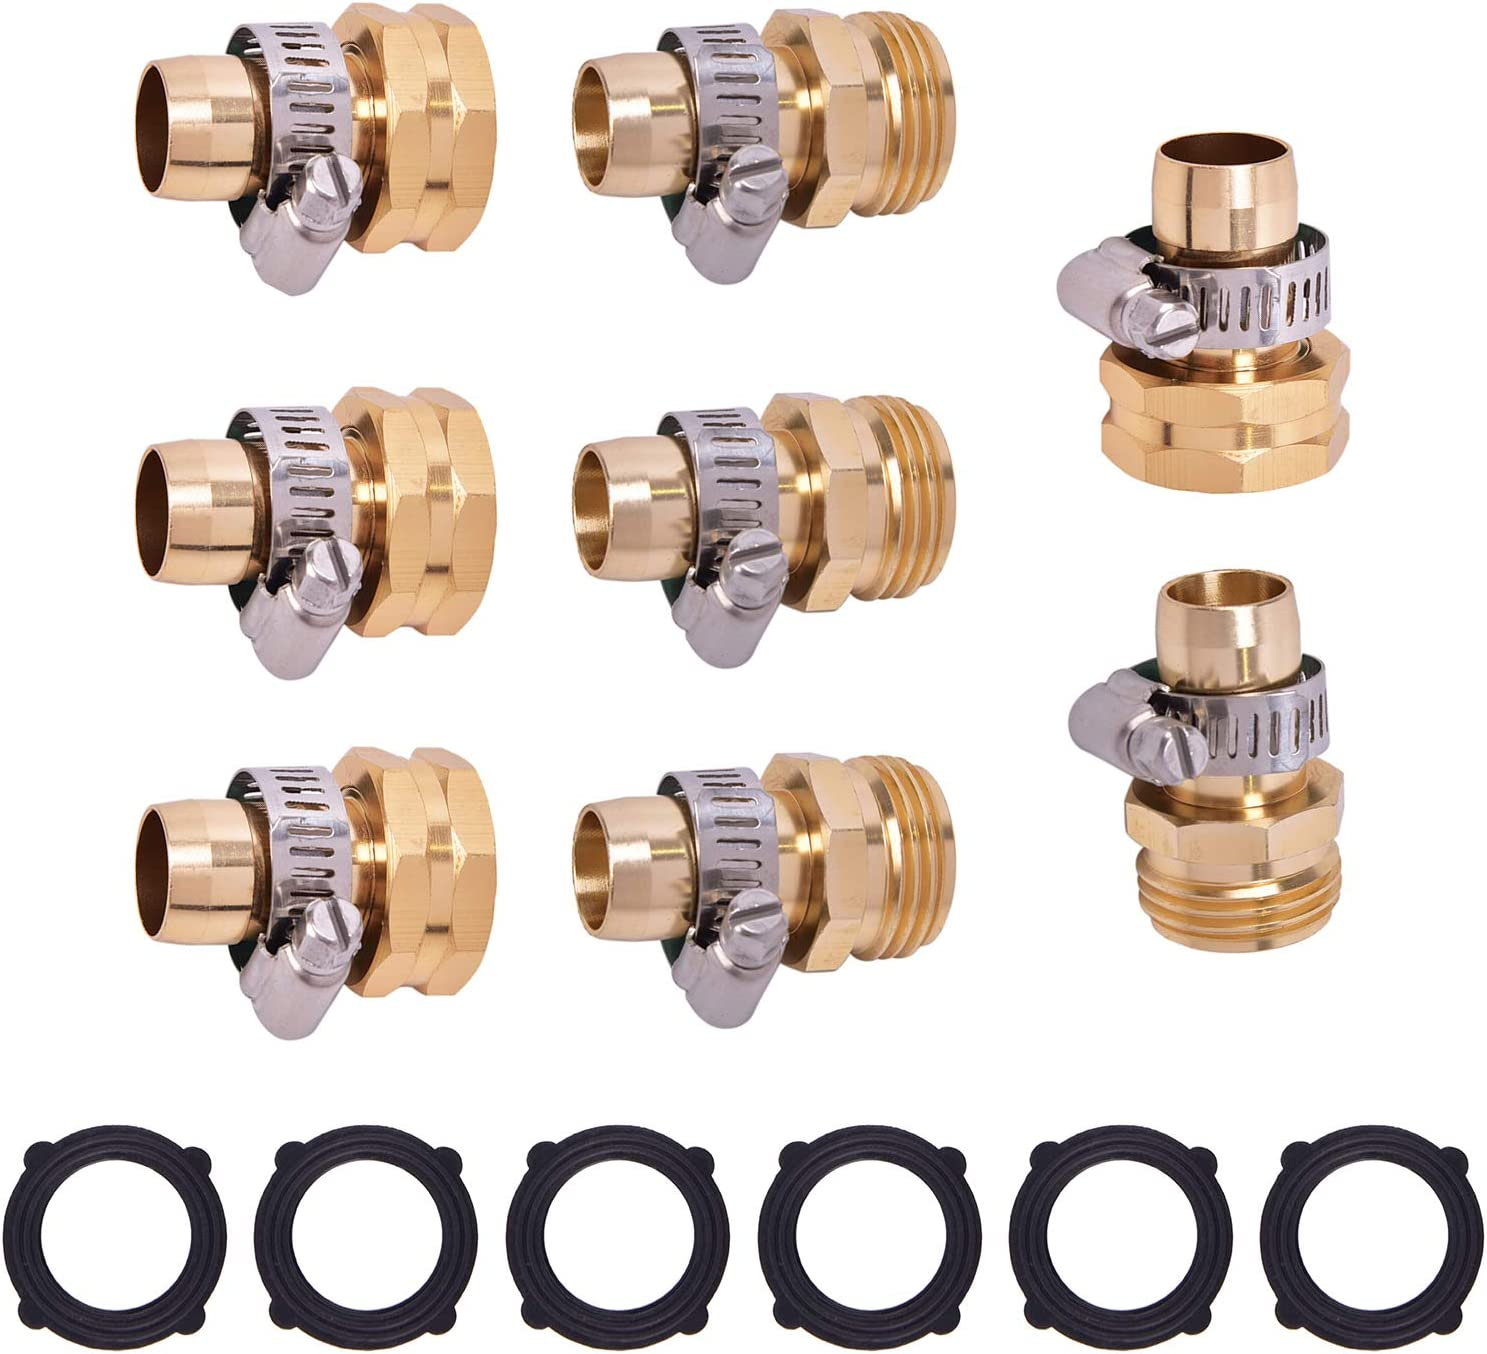 Qukpa Garden Water Hose Repair Connector 4 Kit 3/4 in Male and Female Thread with 8 Clamps and 6 Free Washers to Connect Hose End